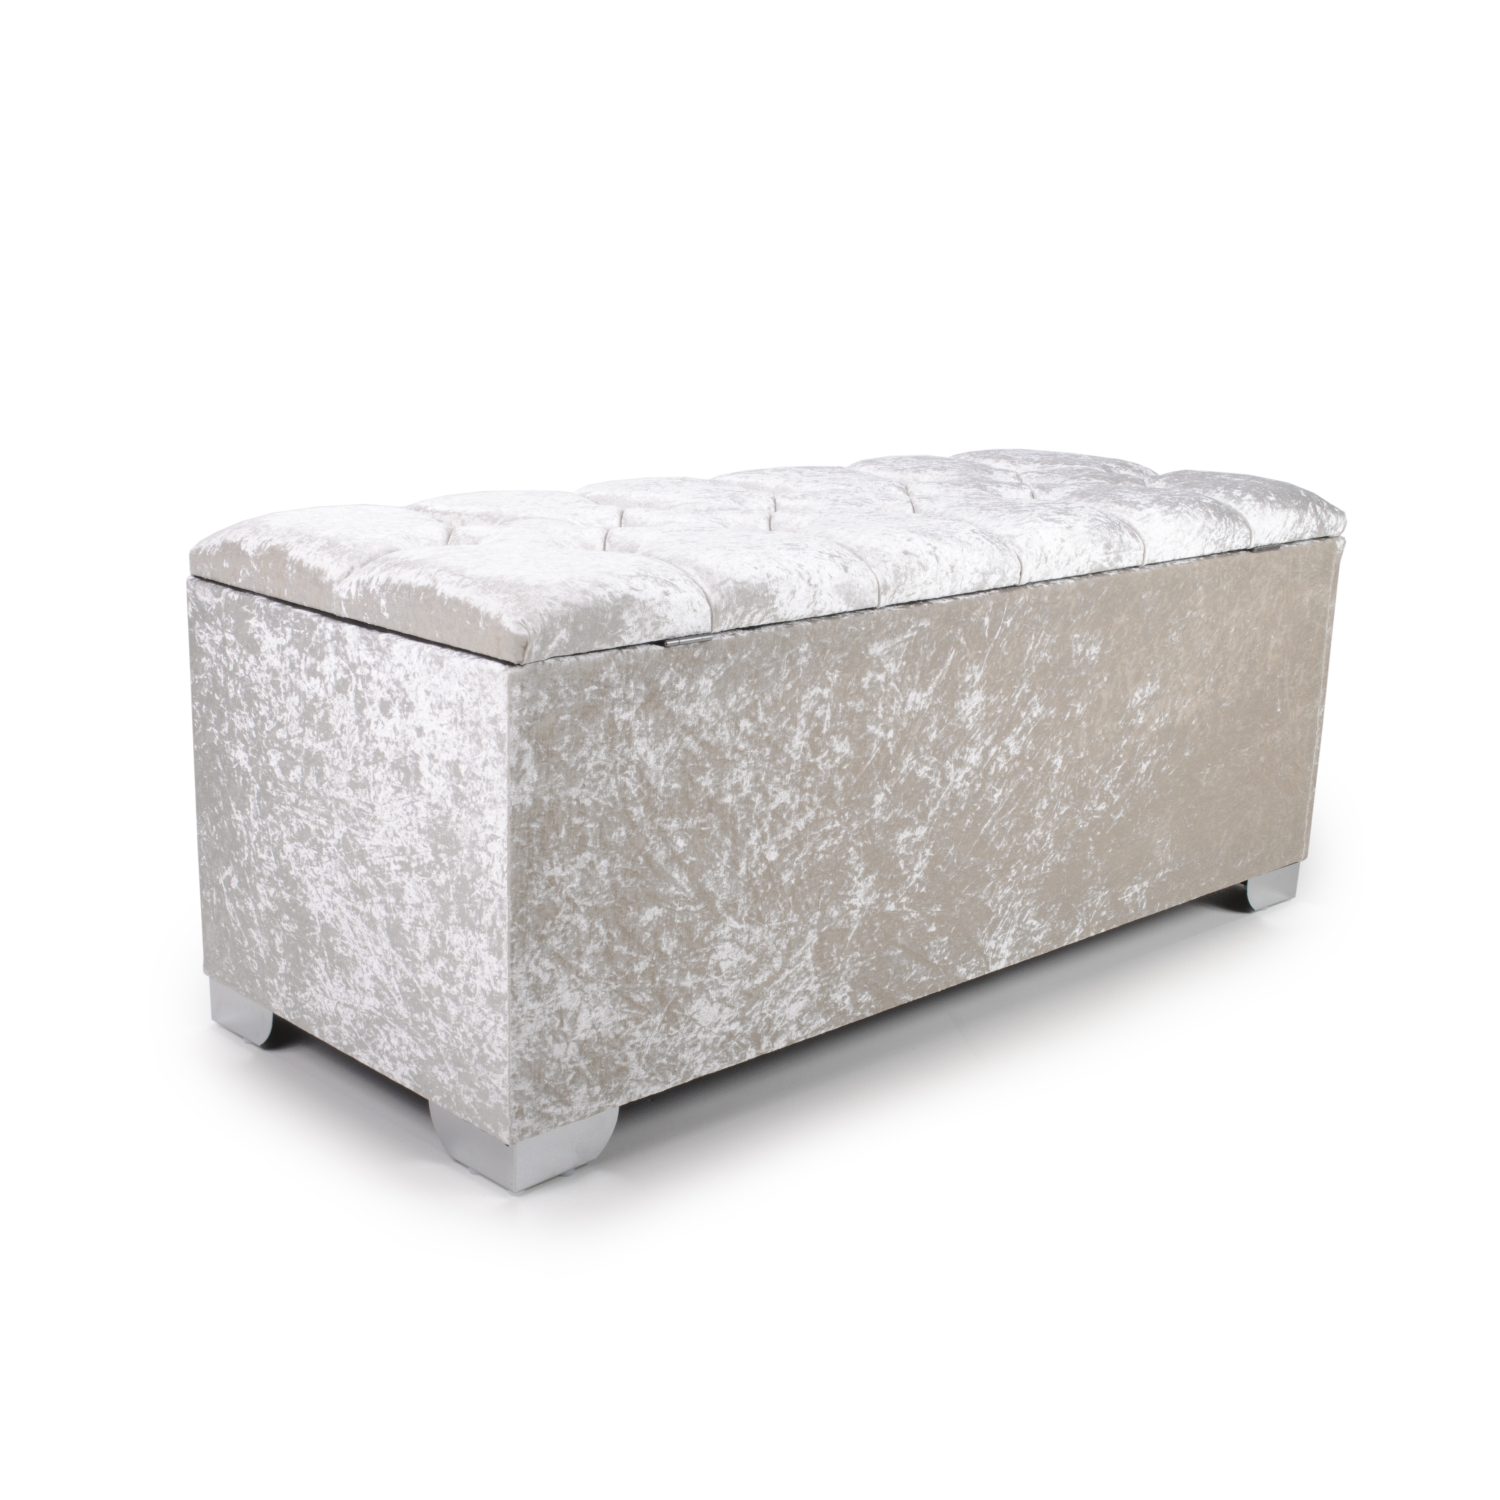 4ft pearl quilted crystal ottoman2